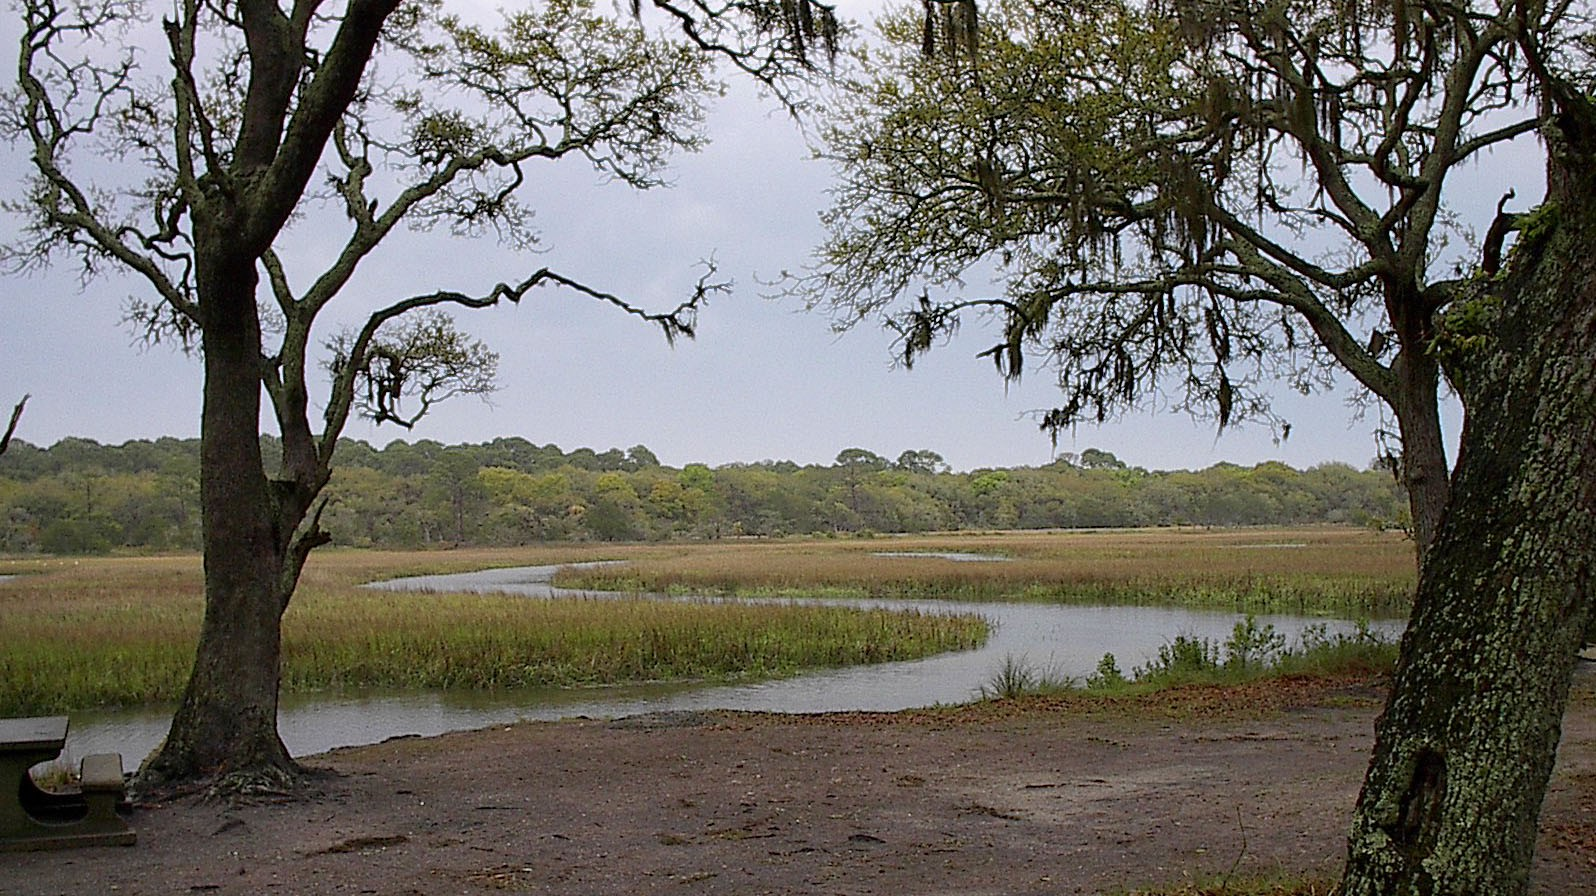 A marsh near Jekyll Island, Georgia, with two trees in the foreground.